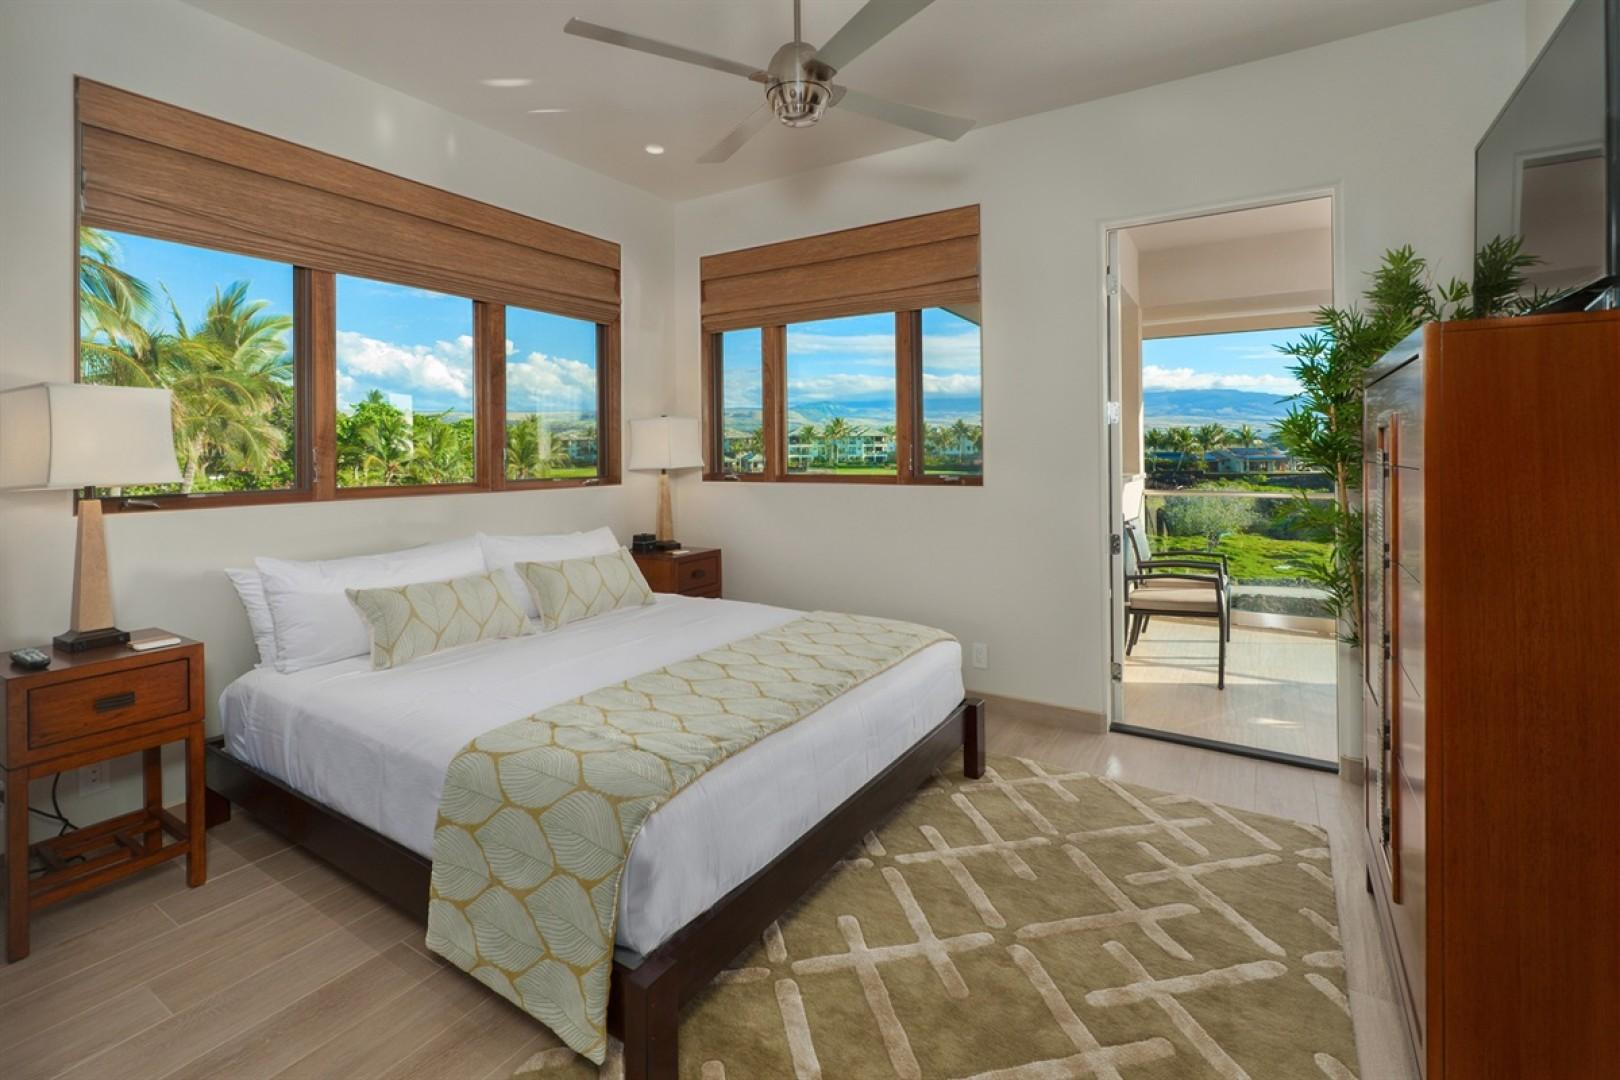 Guest bedroom 8 (upstairs) with Cal King bed, flat screen television and outdoor upper lanai access.